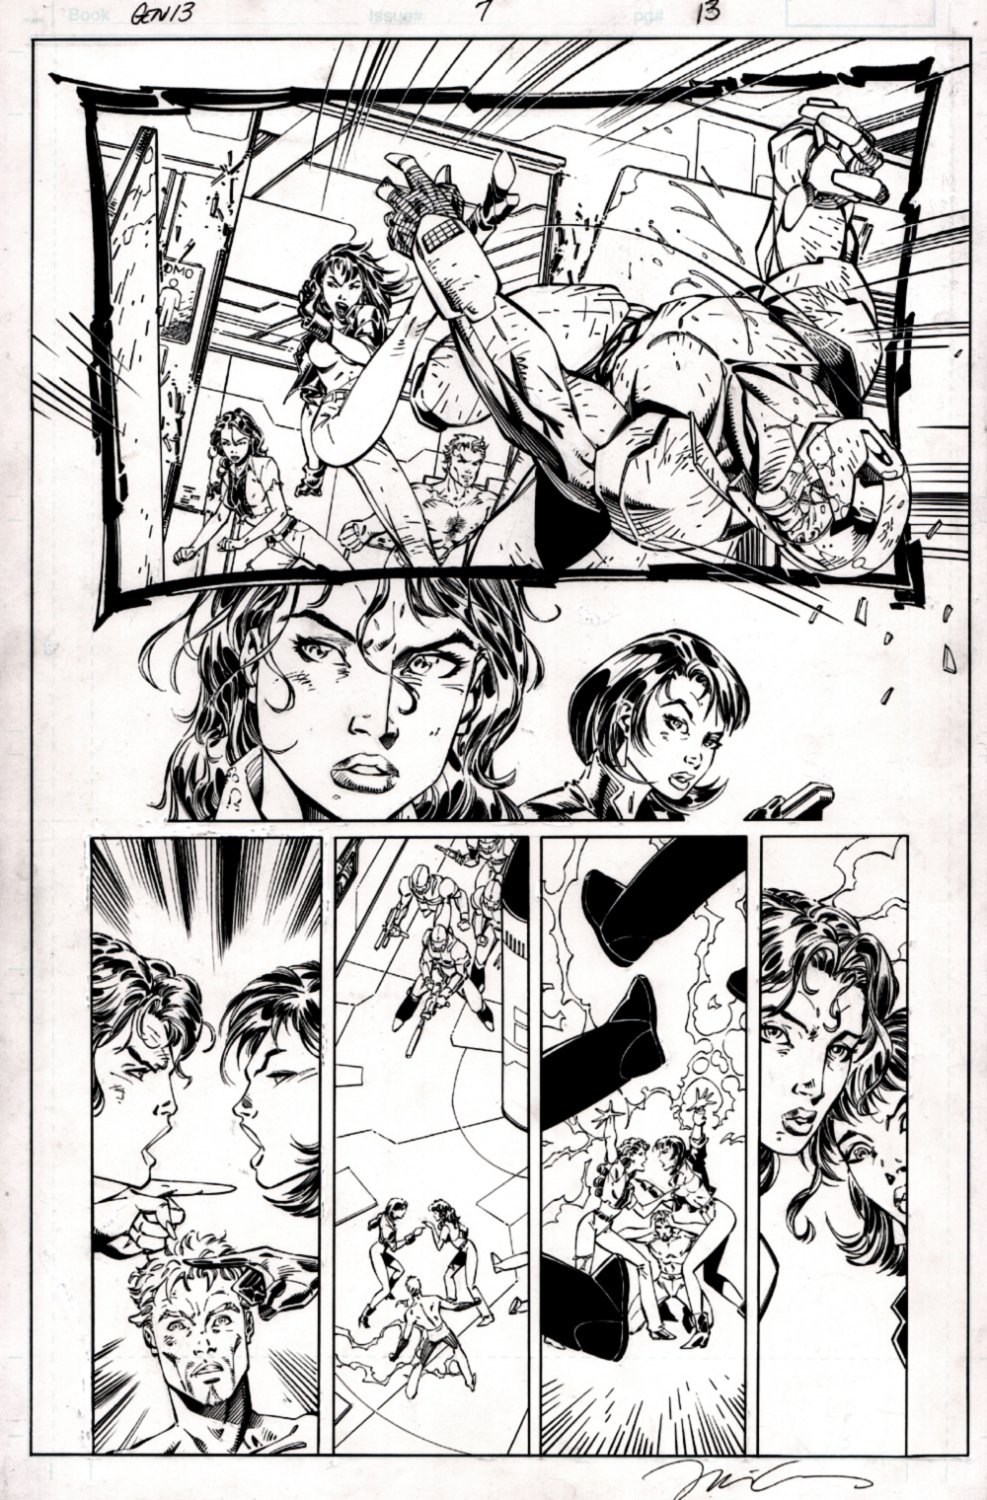 Gen 13 #7 p 13 (BATTLE PAGE!) 1995